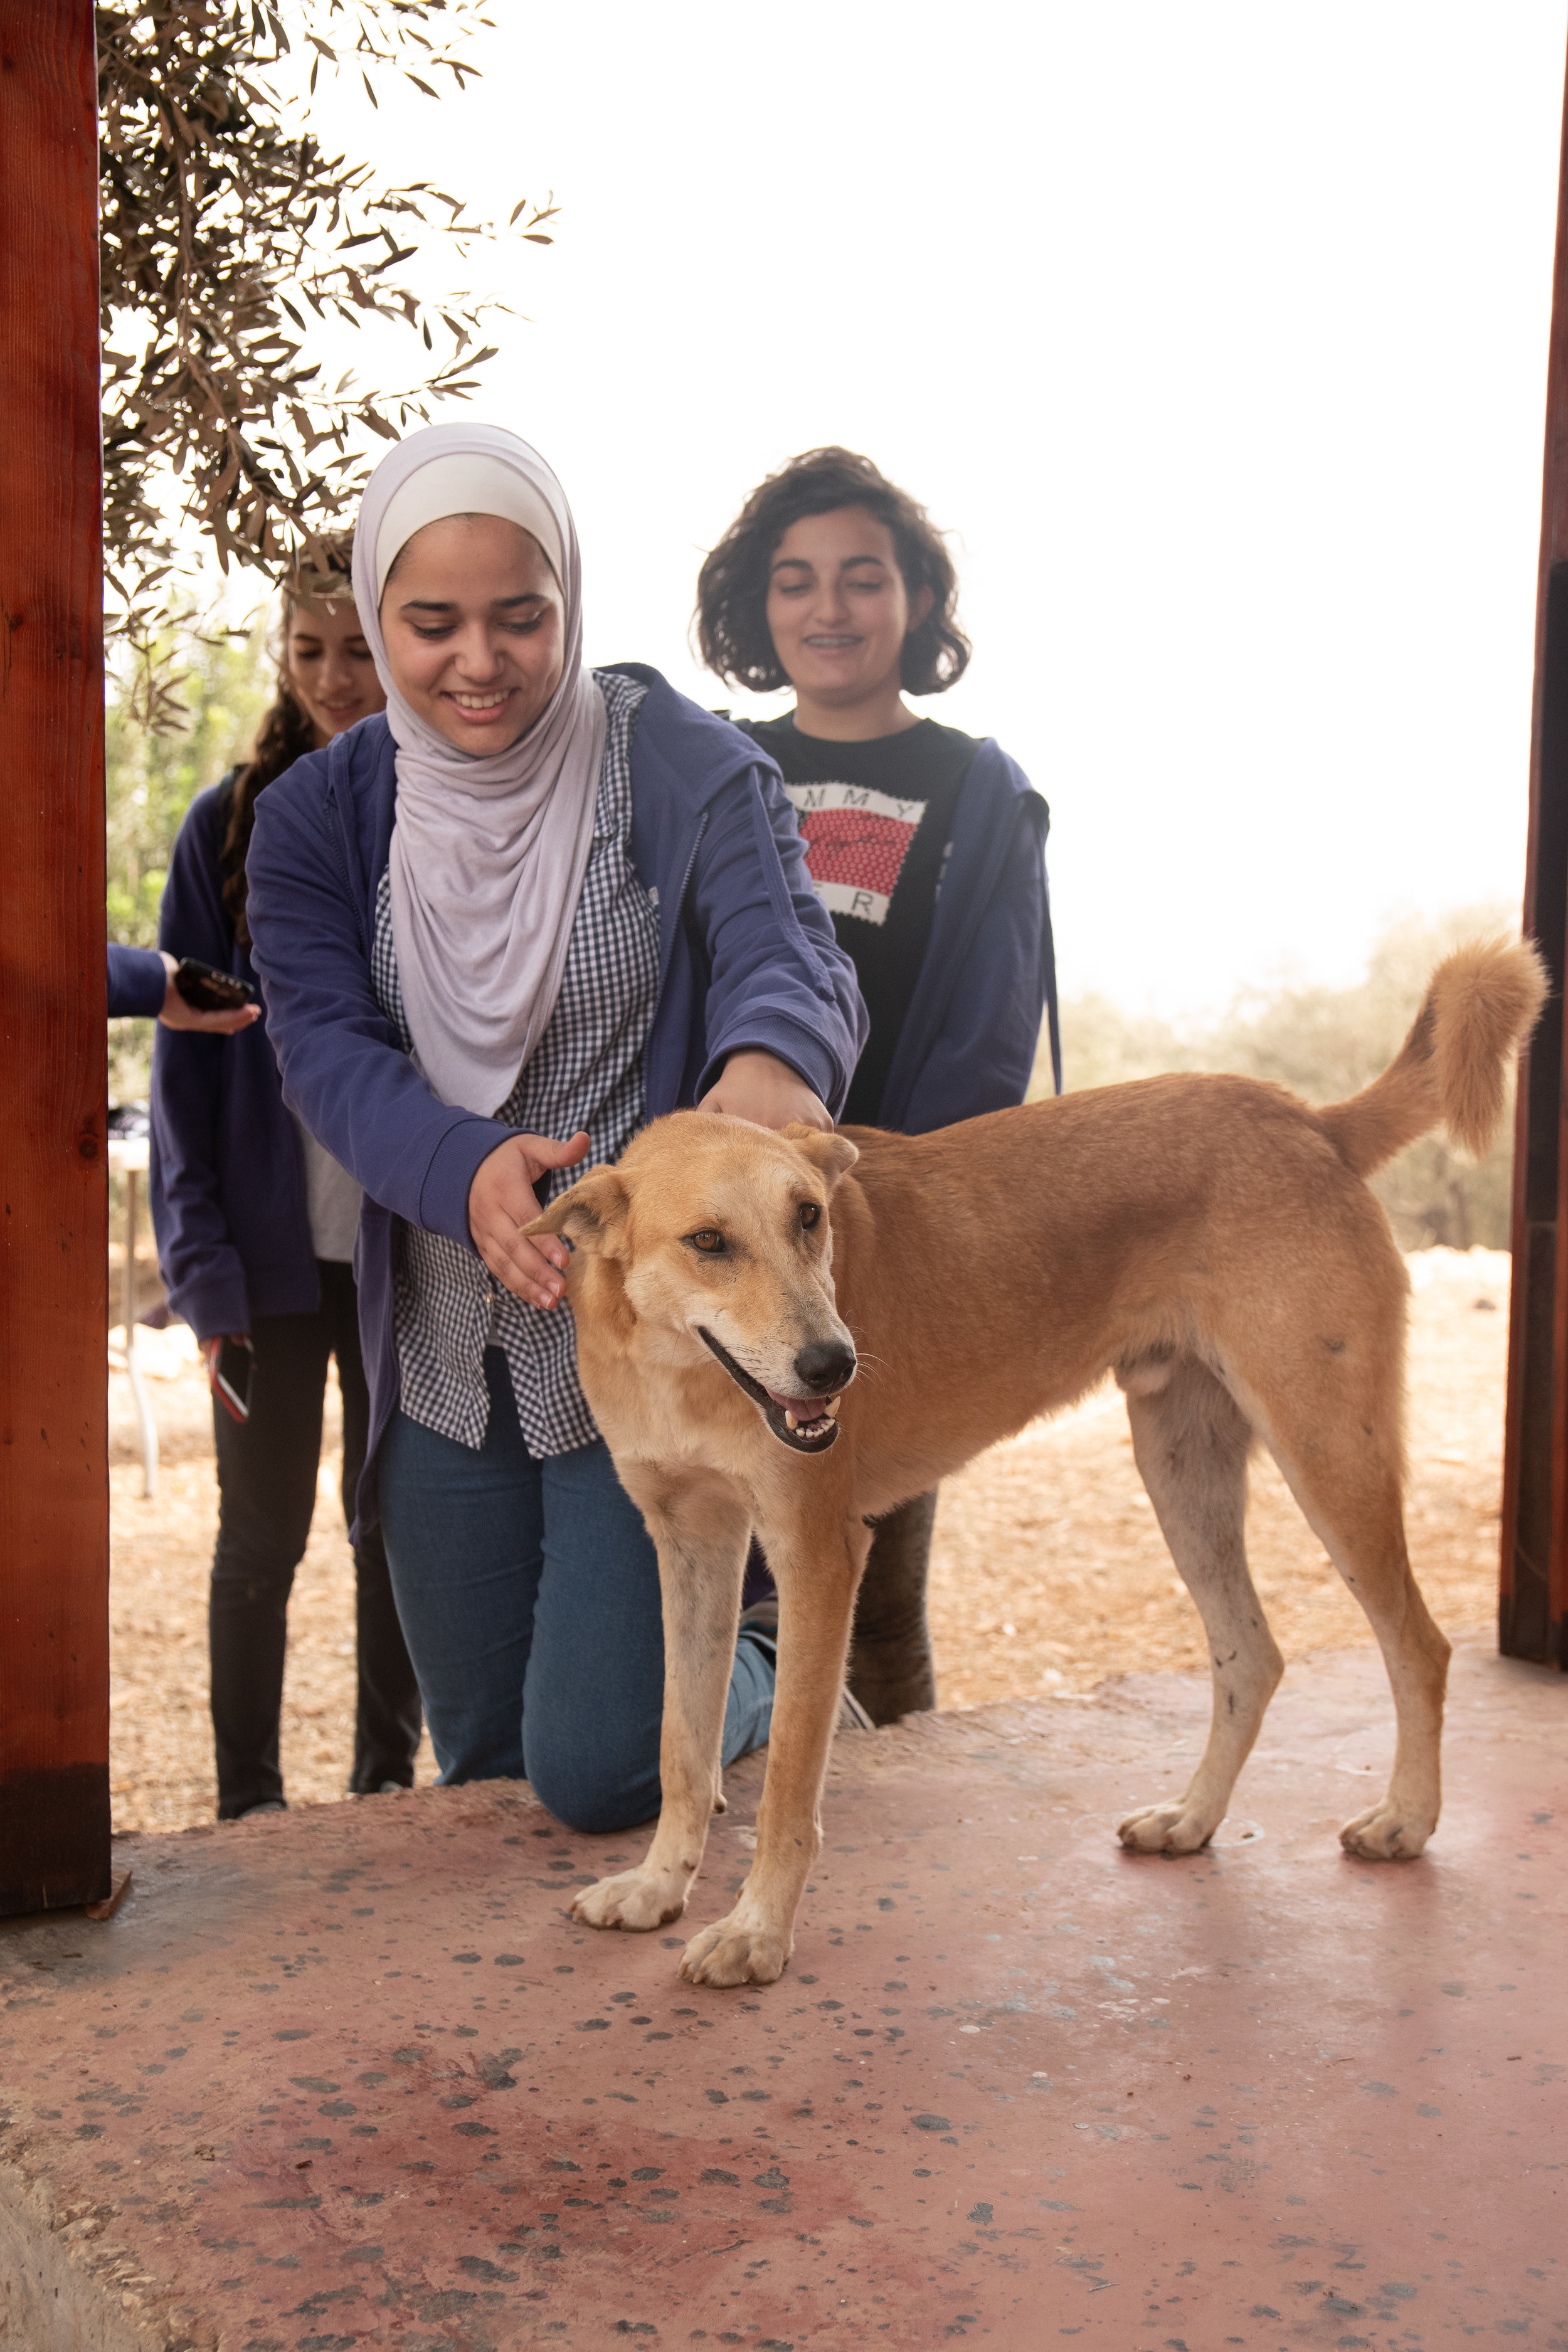 This girl had never touched a dog before so Wallad tried to be as unintimidating as possible